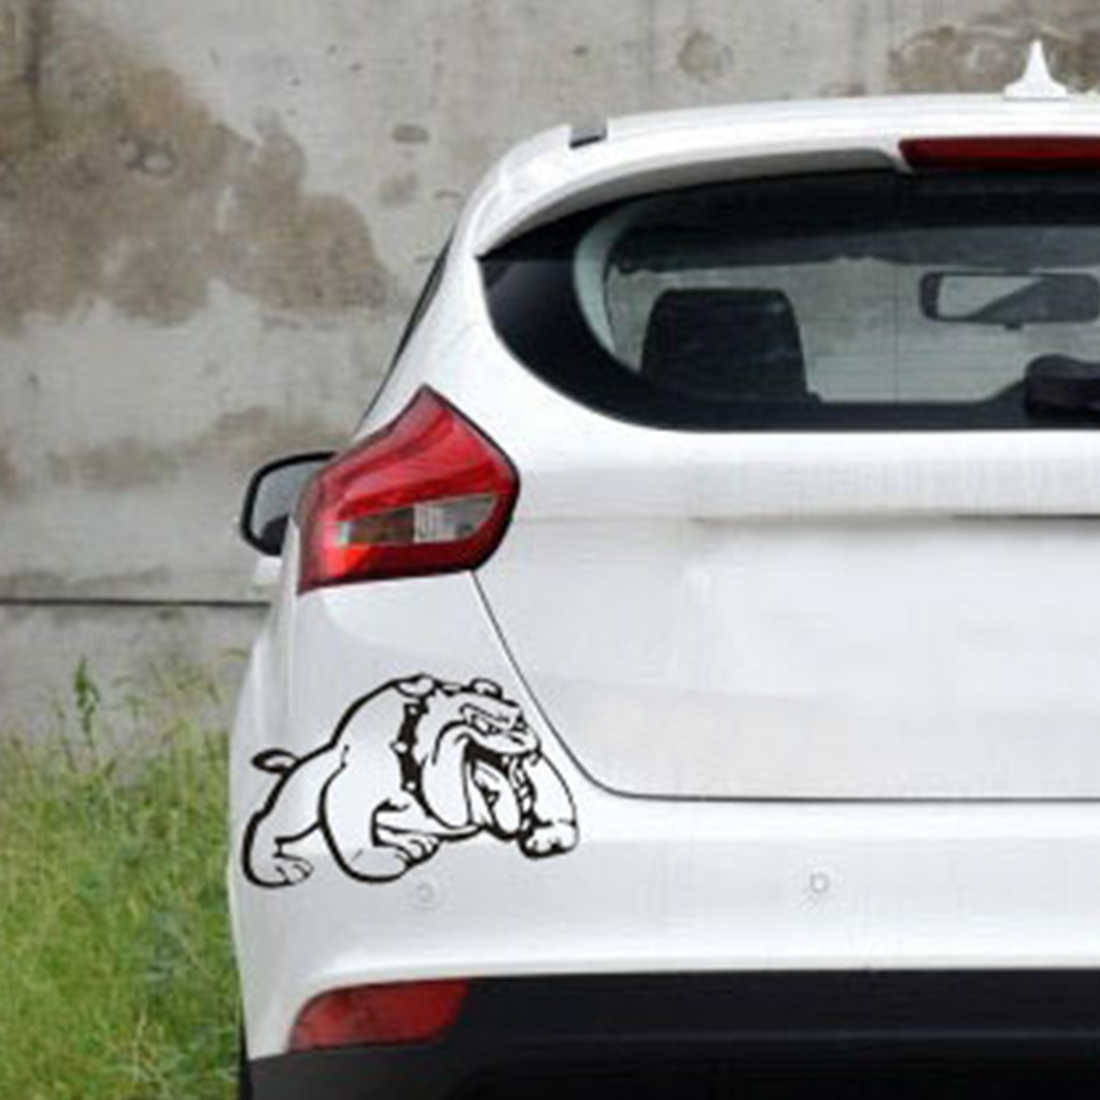 Puppy car stickers fierce harp dog personality scratches cover car stickers domineering car stickers car stickers